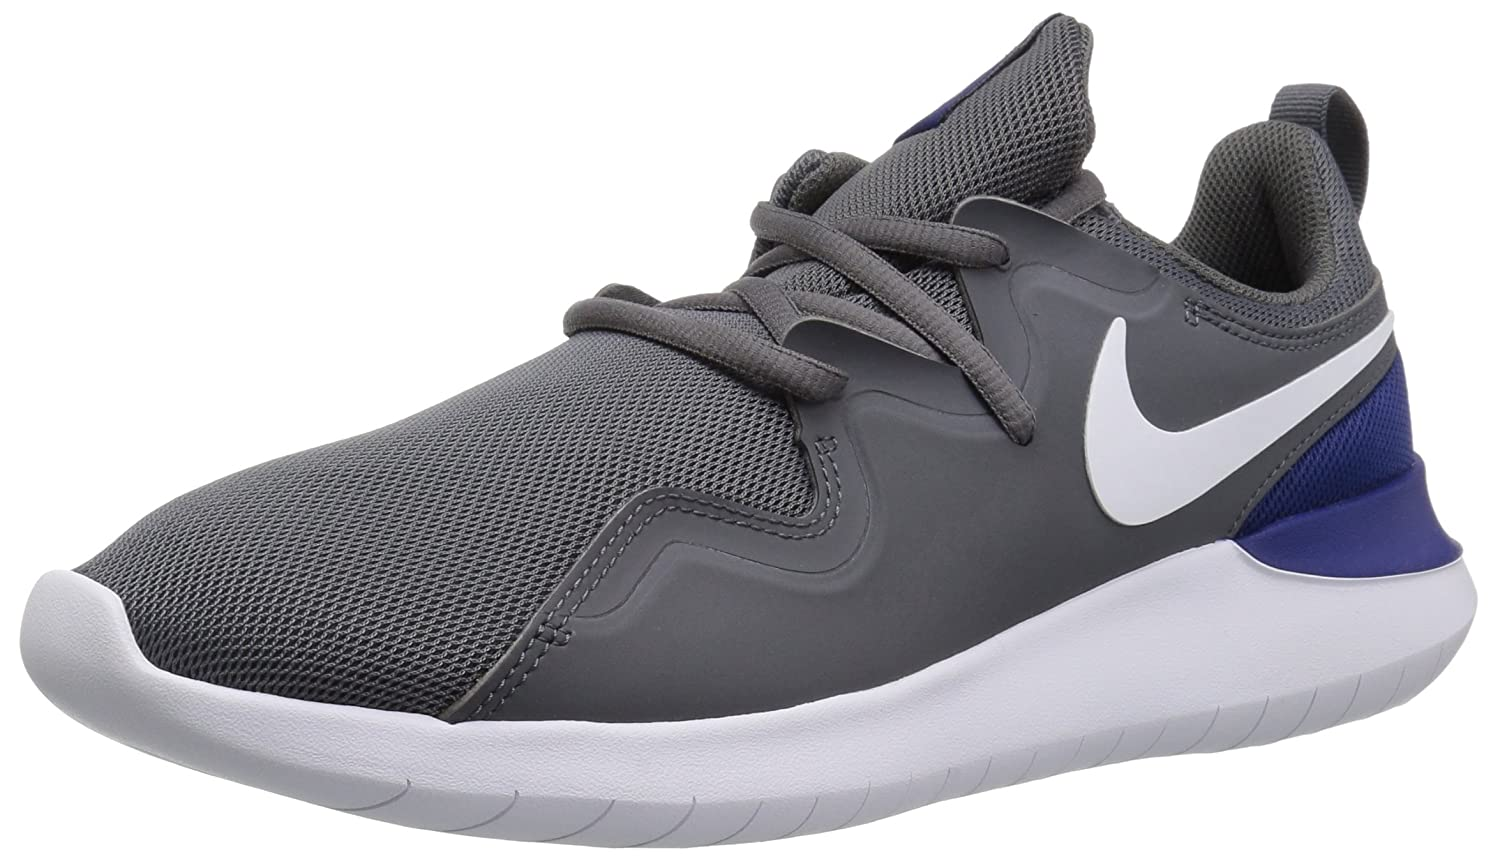 NIKE Men's Tessen Running Shoe B00O86X3WE 6.5 D(M) US|Dark Grey/White - Deep Royal Blue